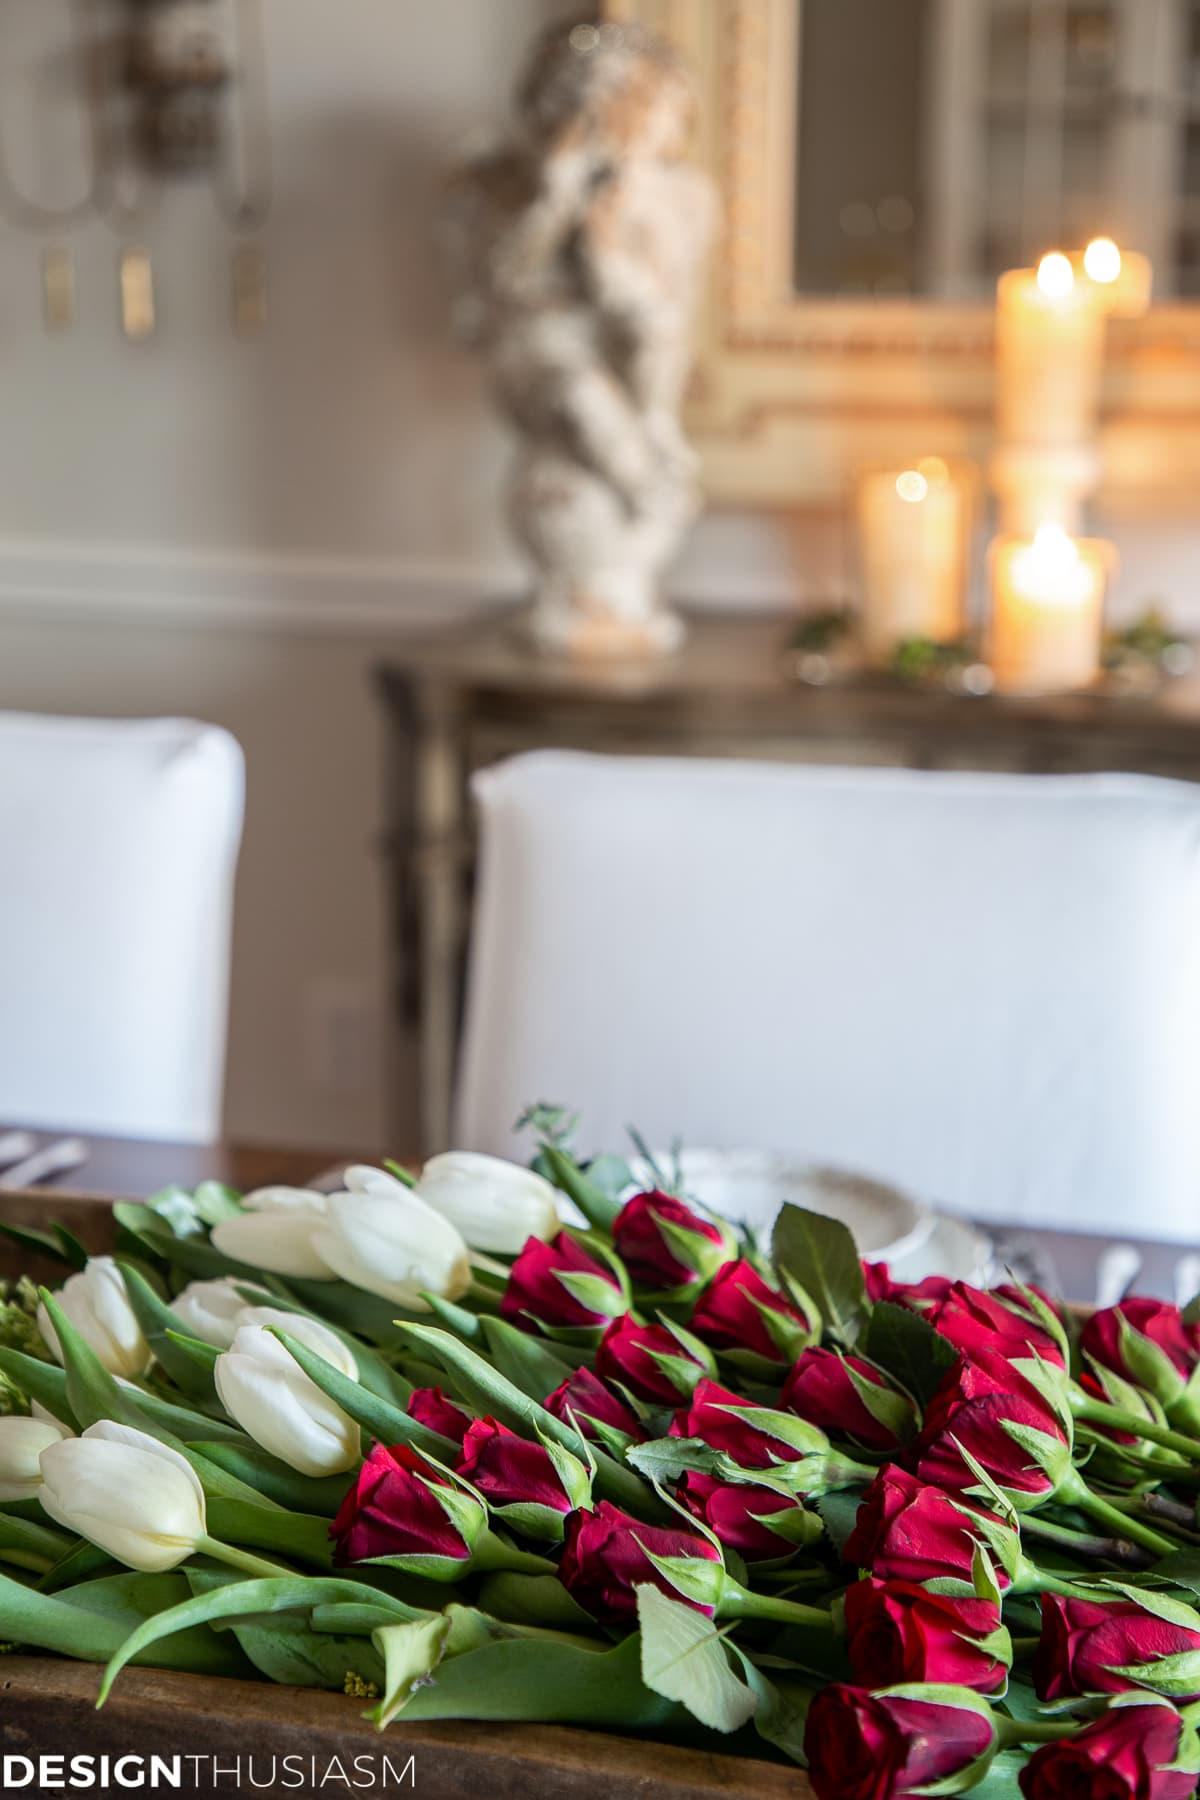 Christmas flowers in the dining room